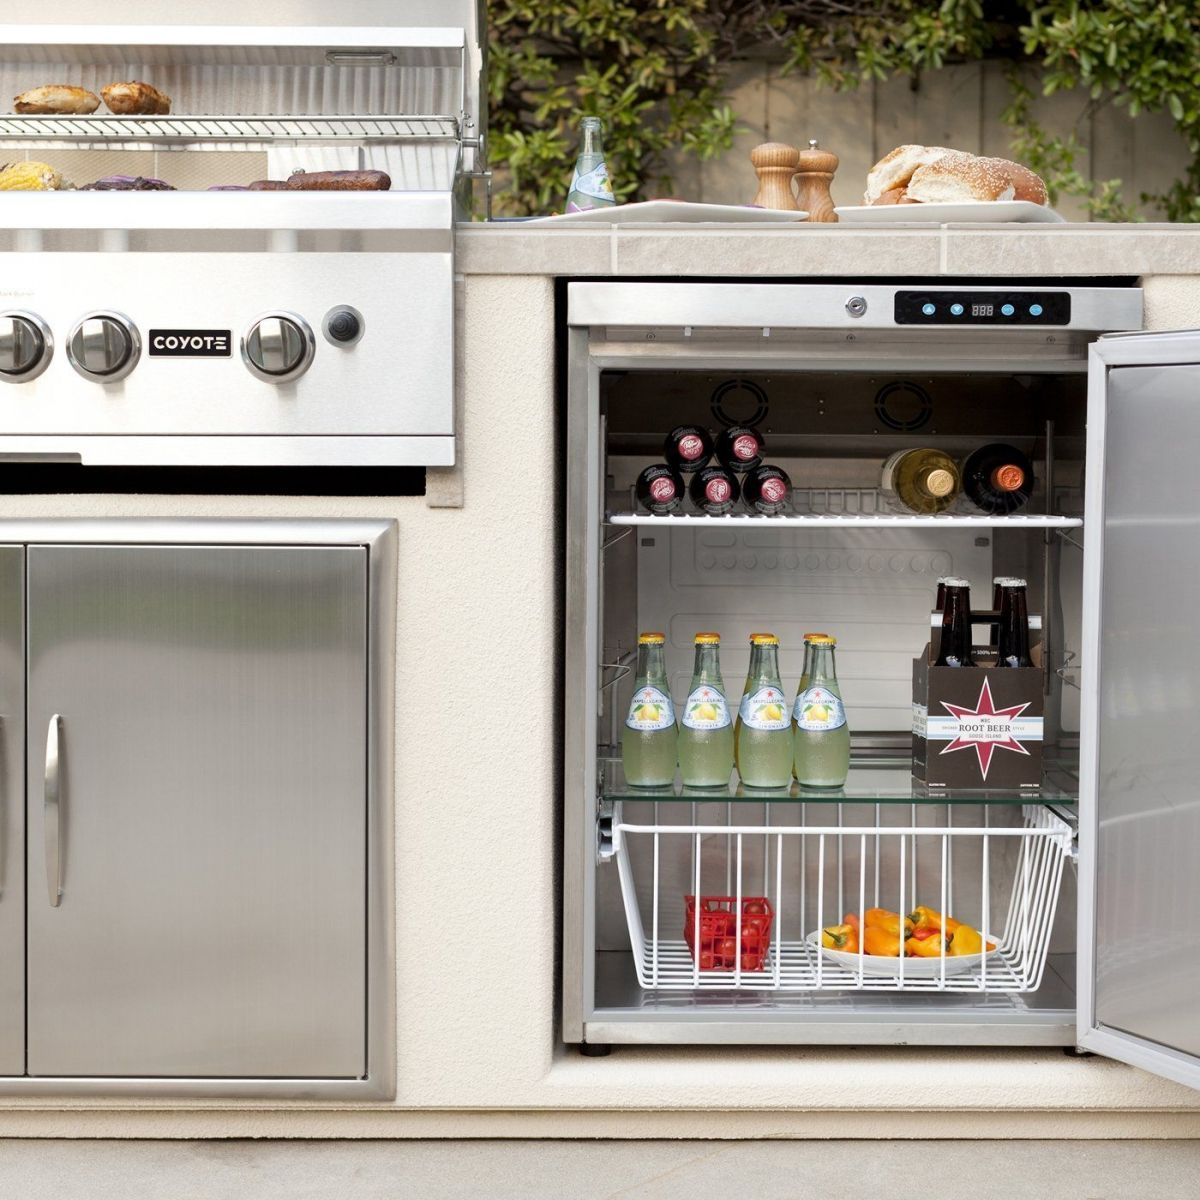 Keep Beverages Cool And Close To The Grill With Outdoor Refrigeration From Coyote Coyotegrills Coyo In 2020 Outdoor Refrigerator Outdoor Appliances Outdoor Kitchen